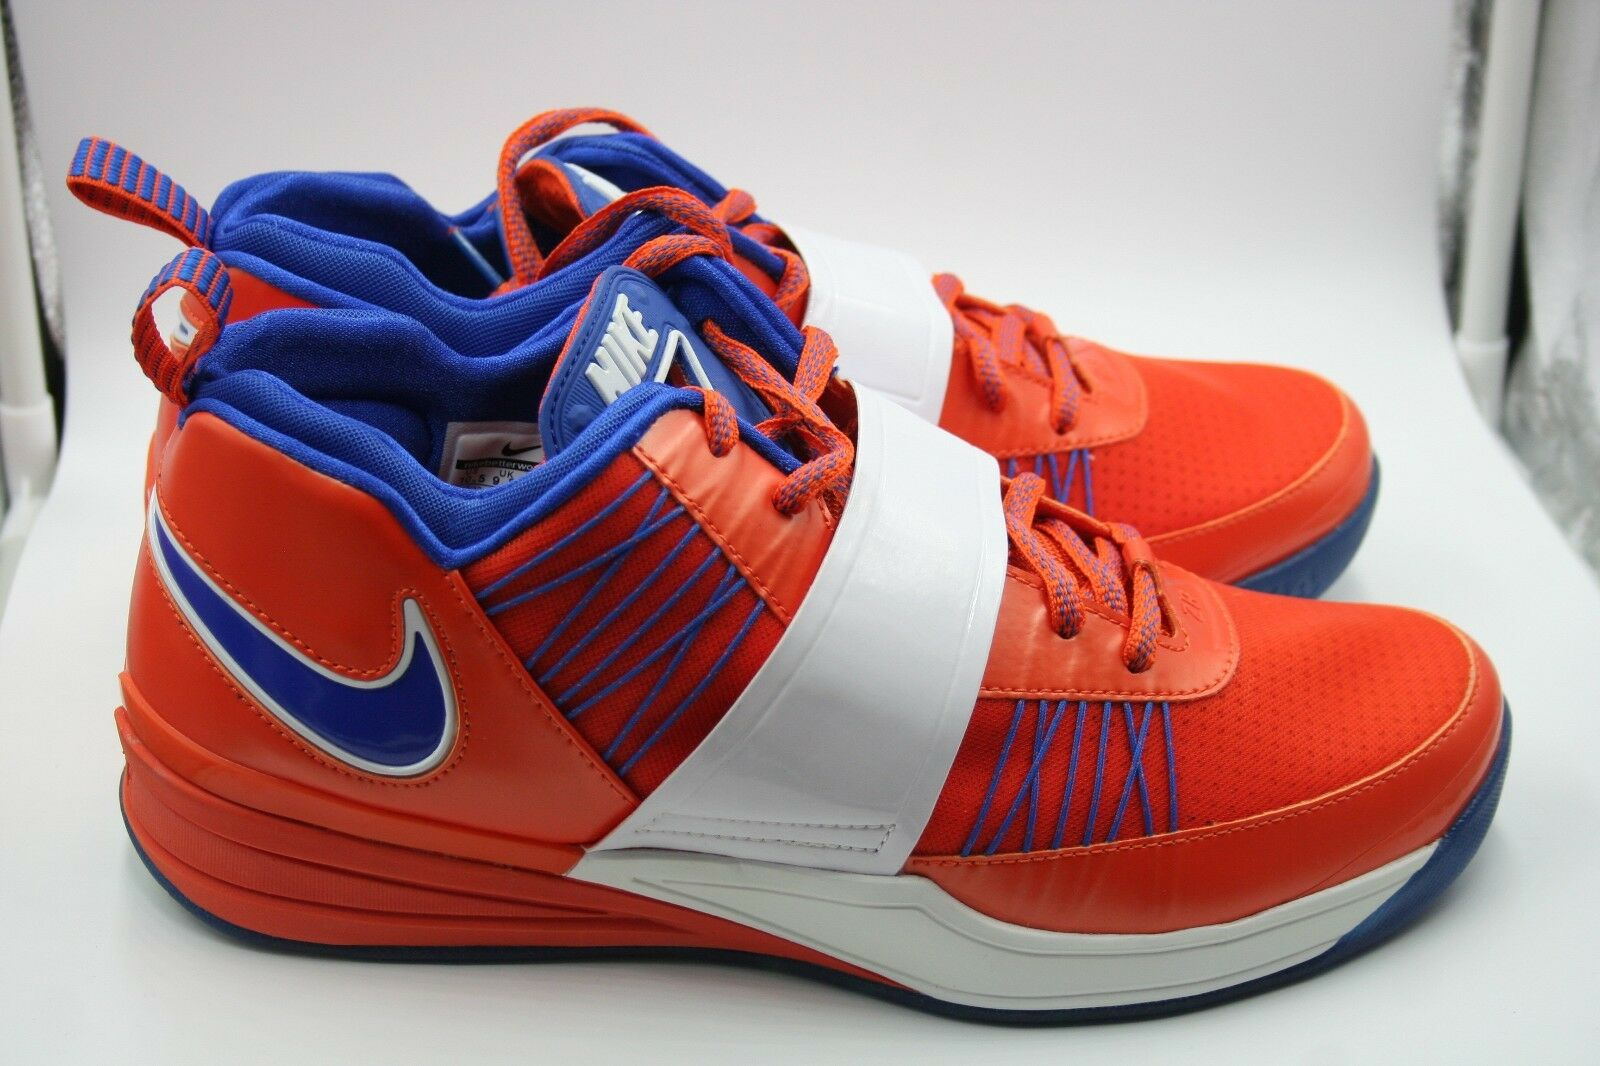 Nike Zoom Revis DS Price reduction The latest discount shoes for men and women